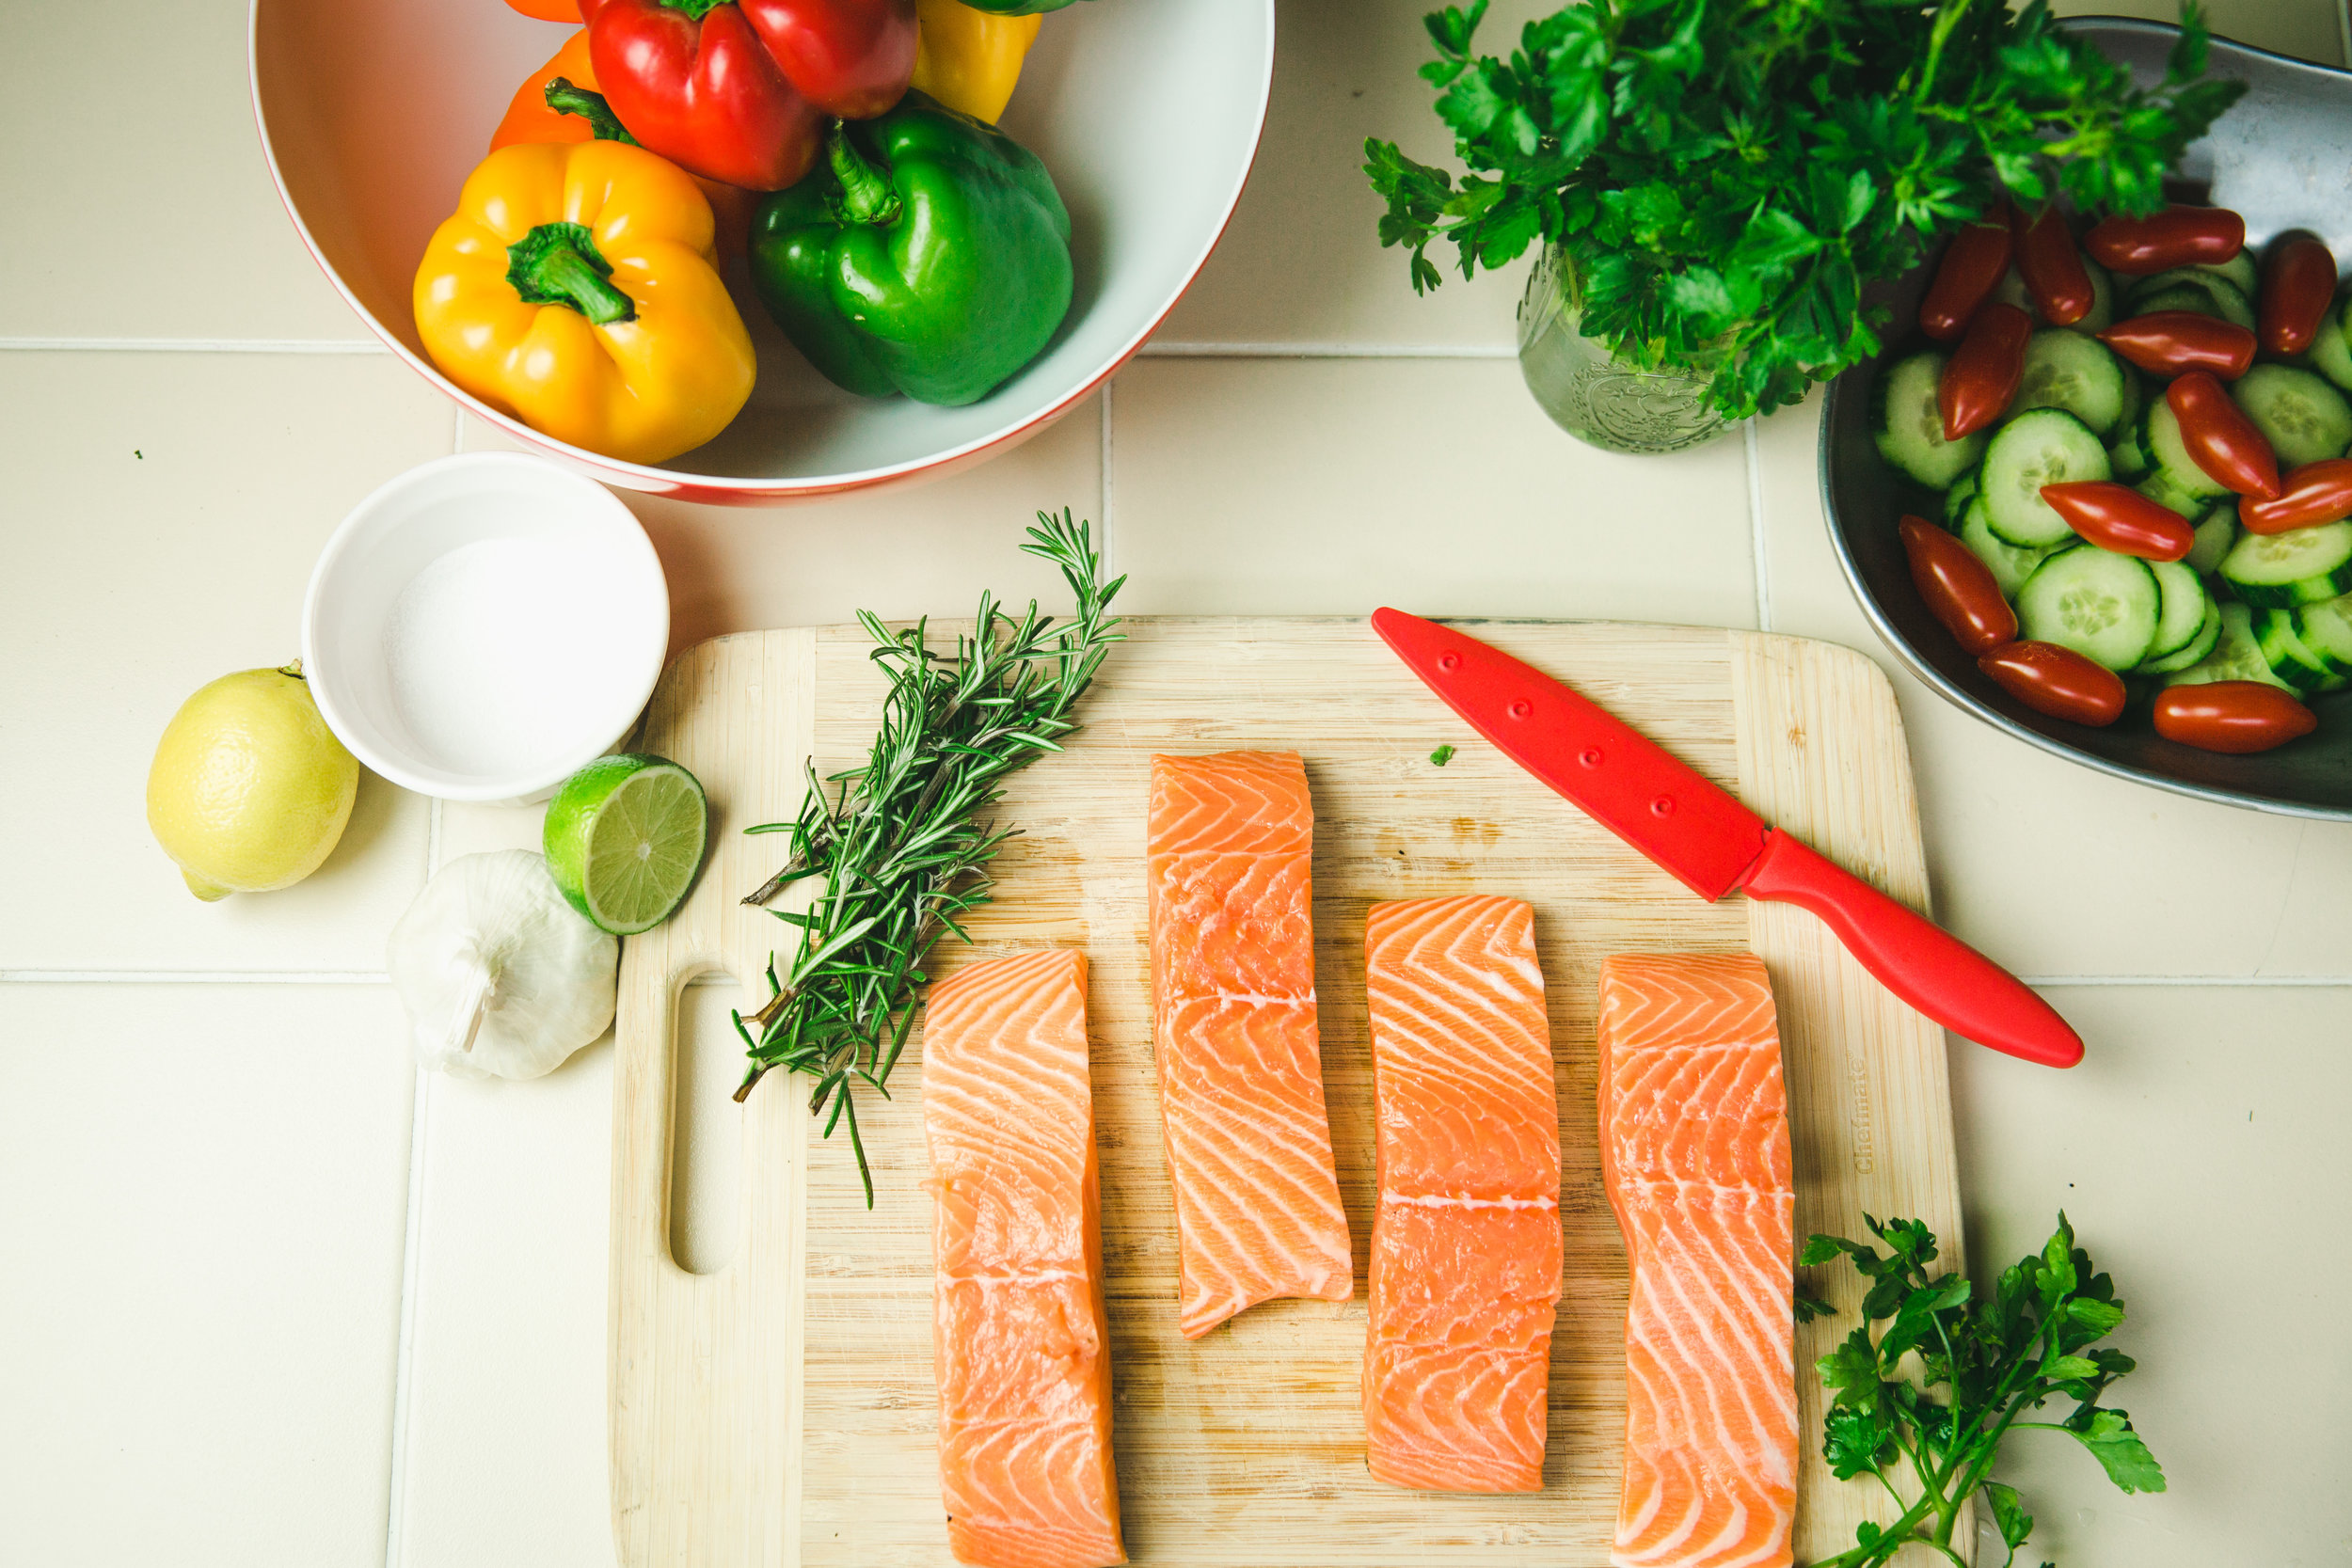 Step 1 - Lay your salmon out on a cutting board